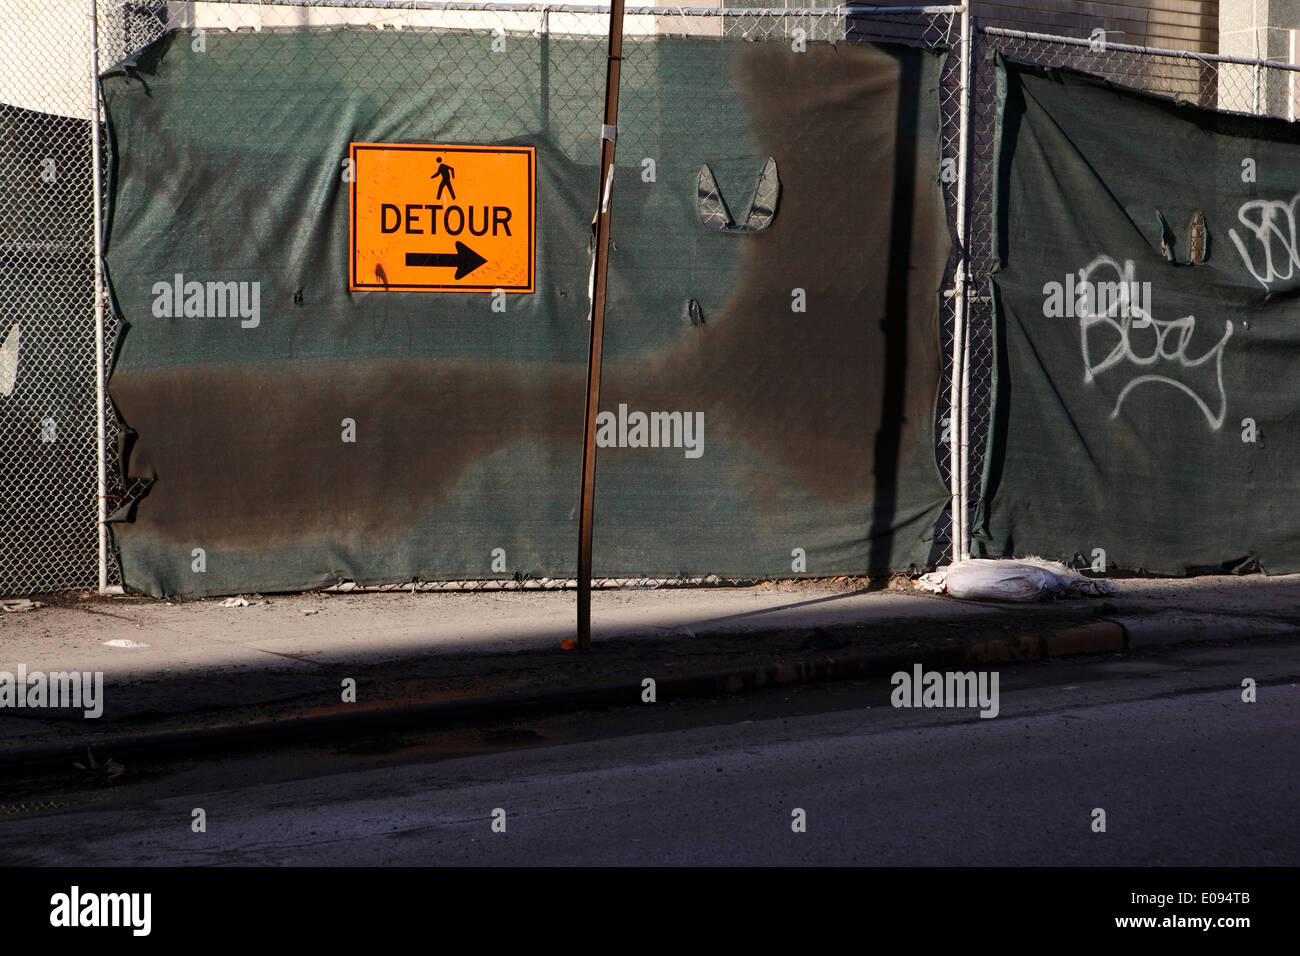 pedestrian detour traffic sign - Stock Image